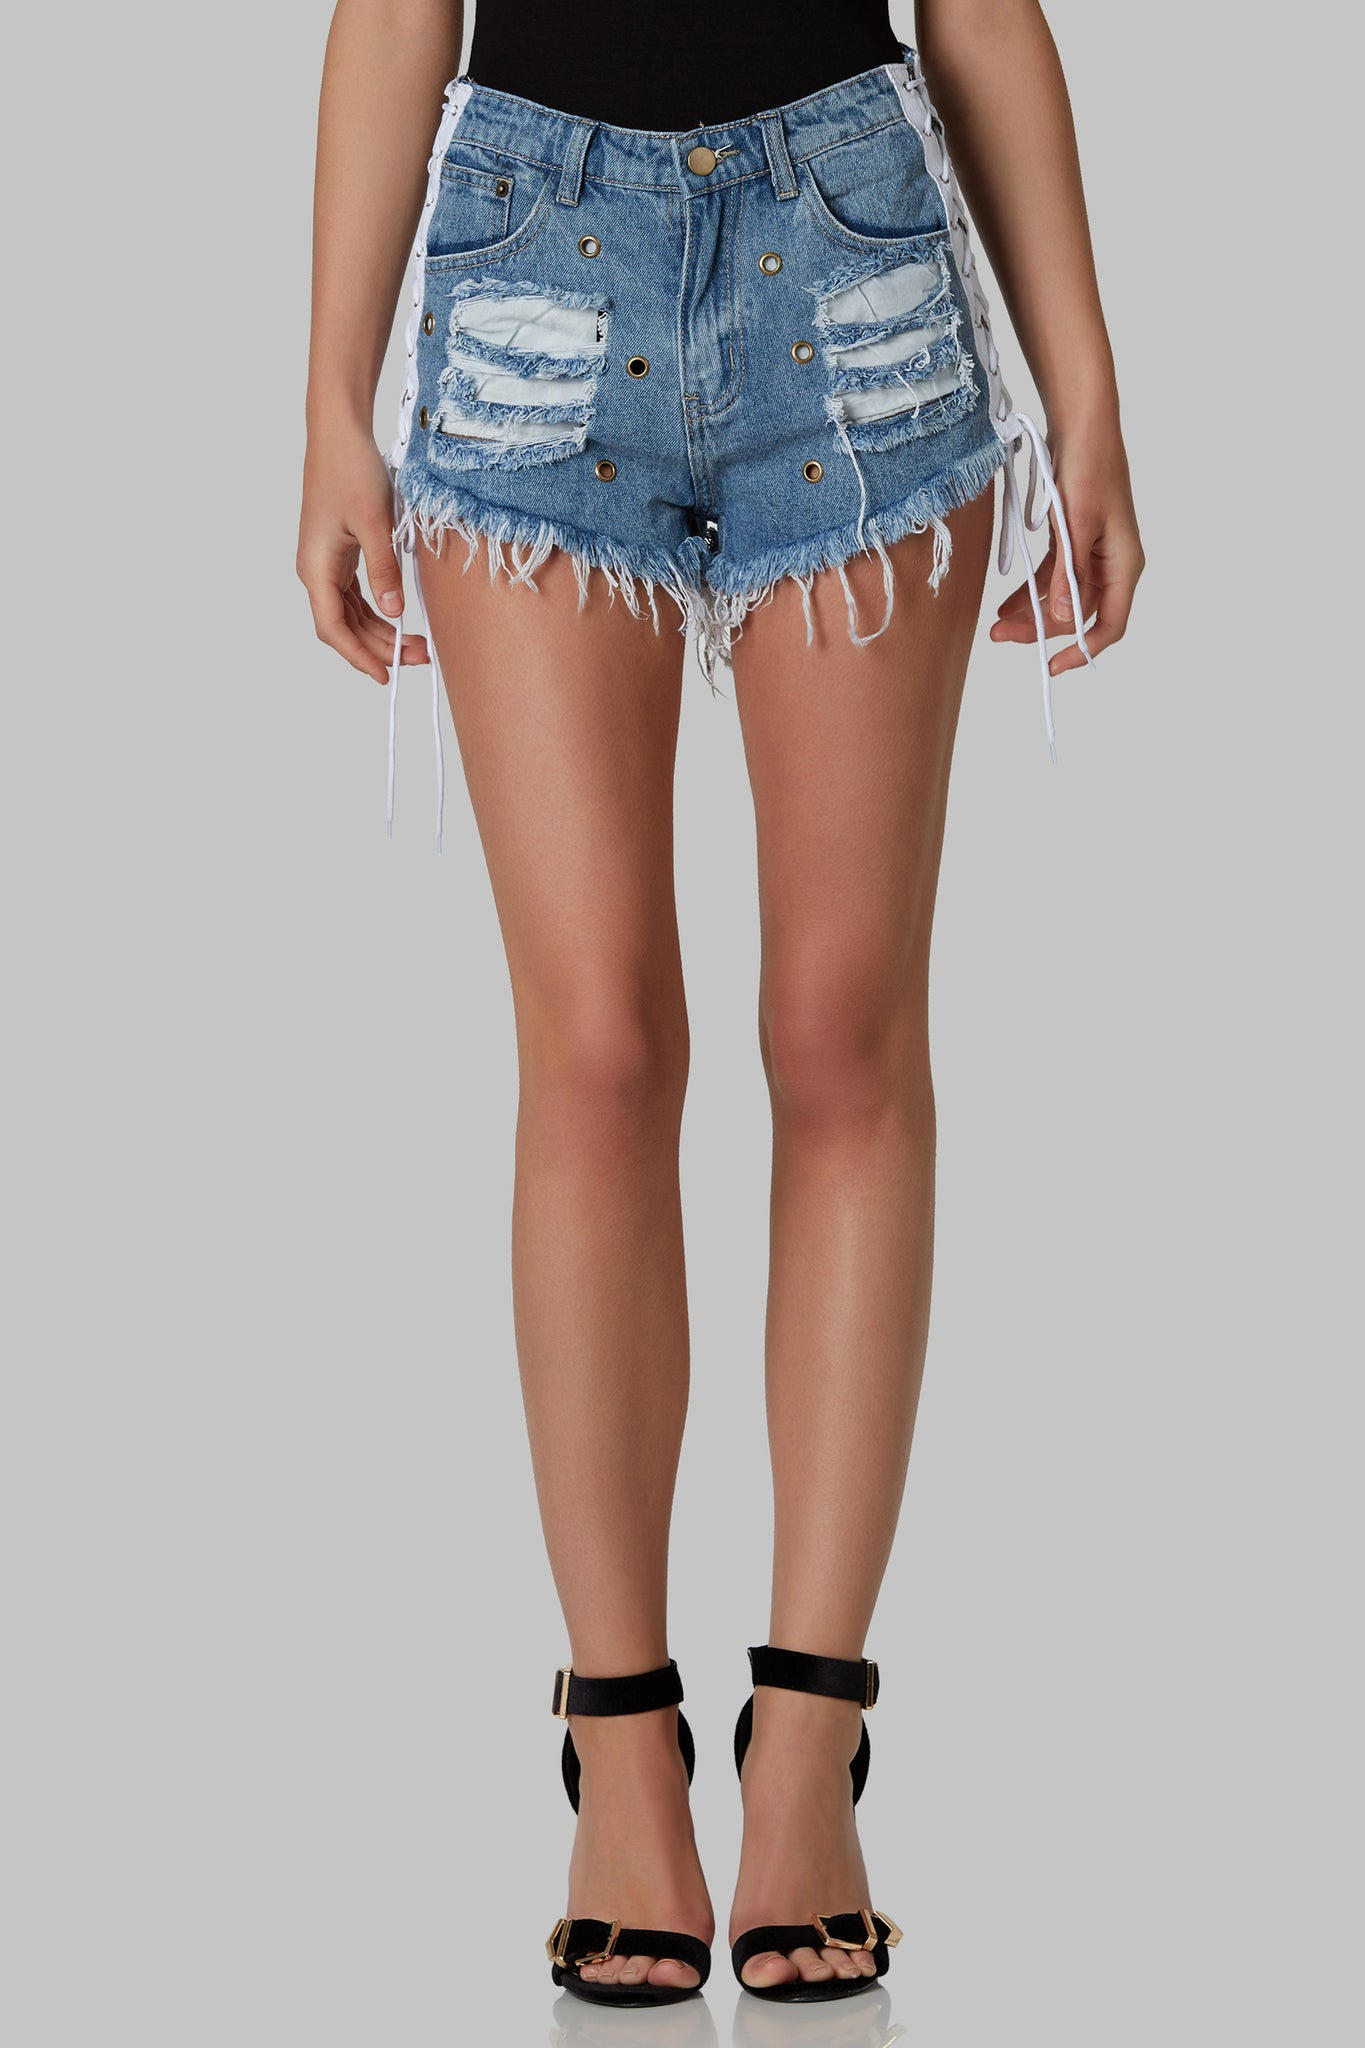 A stylish pair of denim shorts perfect for the spring. These shorts have distressed rips on the front and back, with lace up detailing on each side. Has single zipper at bottom for closure.